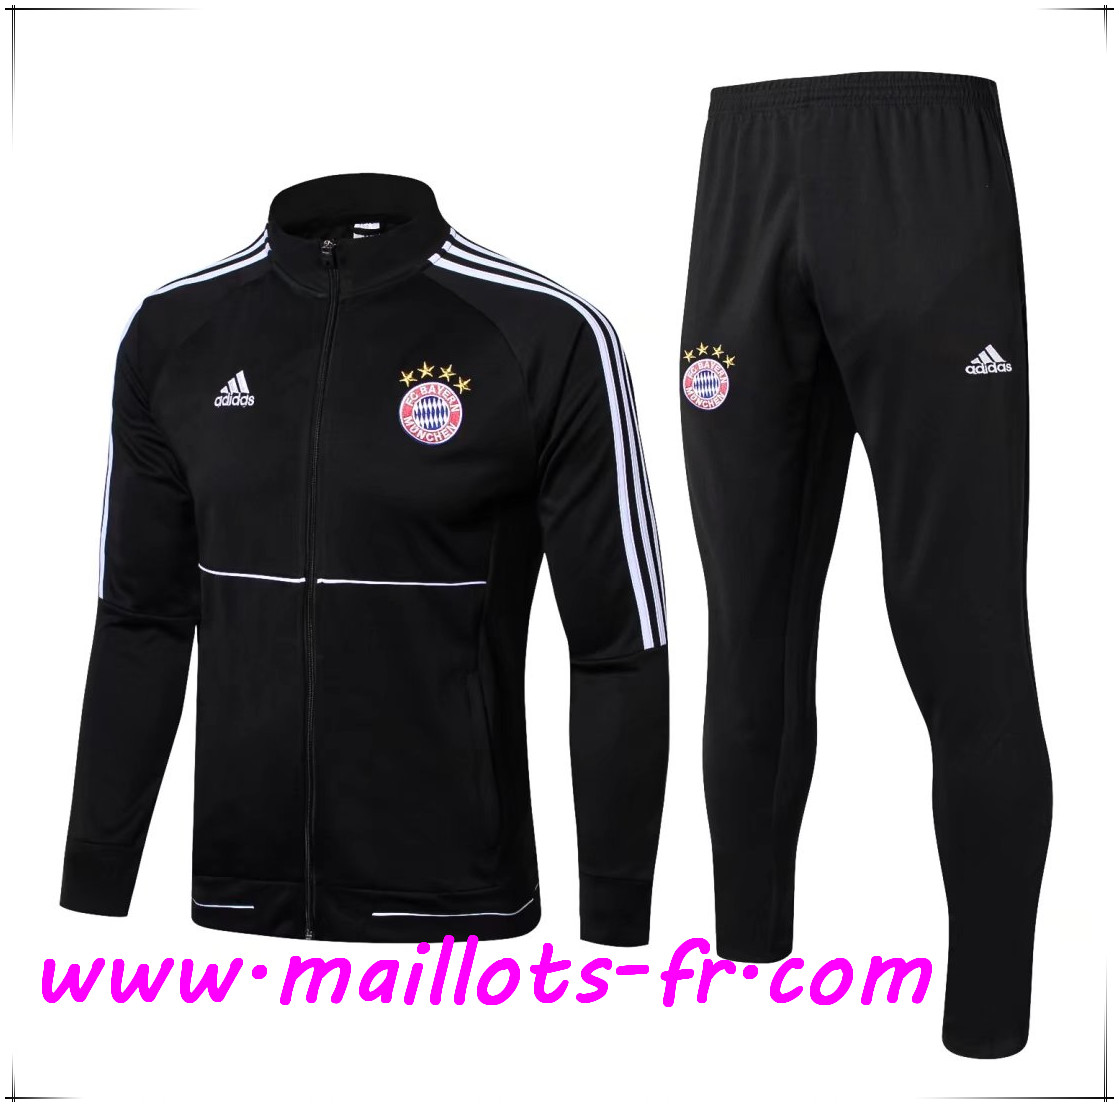 collection Maillots-fr Survetement de Foot